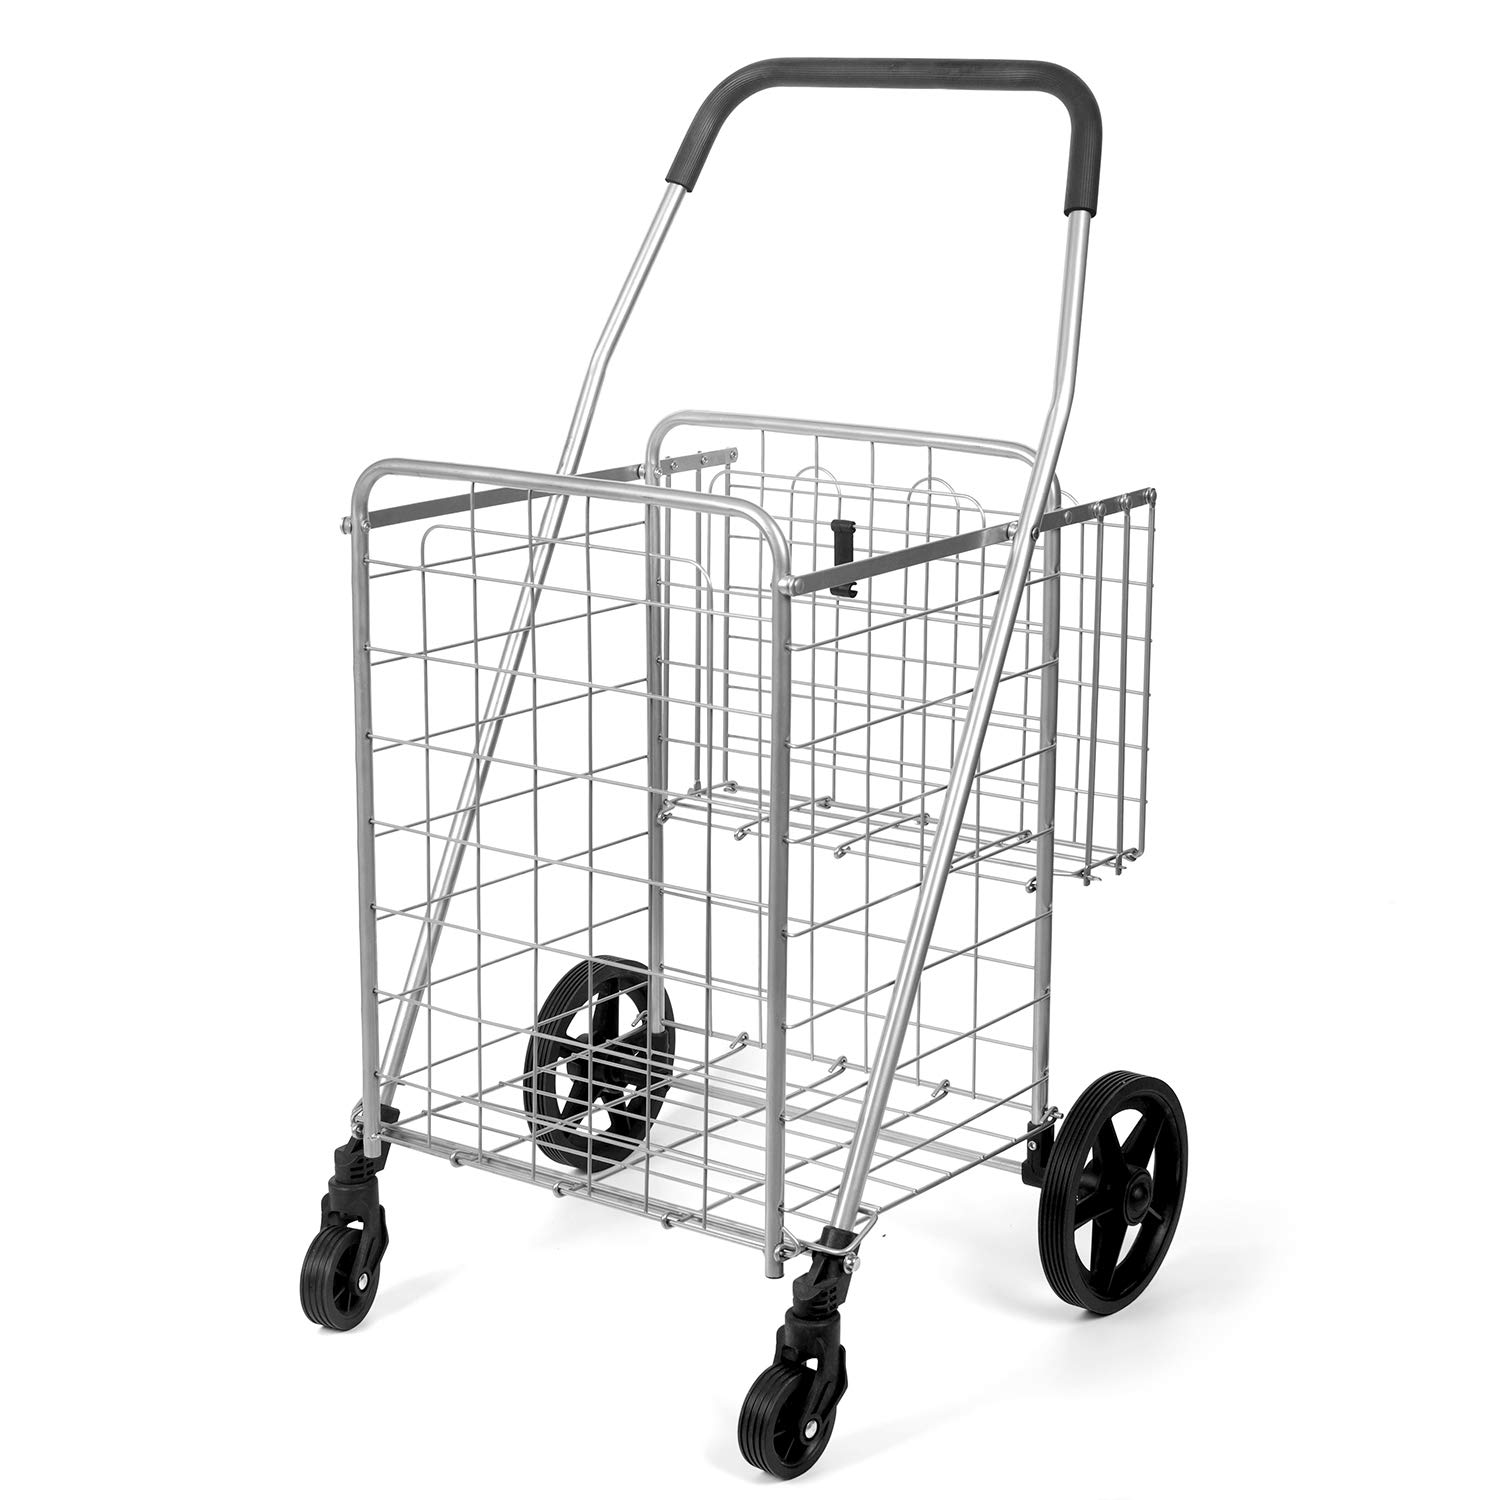 Durable Utility Folding Shopping Cart – Supenice (SN7504) Adjustable Handrails Double Basket Swivel Wheels 66 lbs Capacity Multipurpose Trolley Dolly Suitable with Laundry, Shopping, Grocery